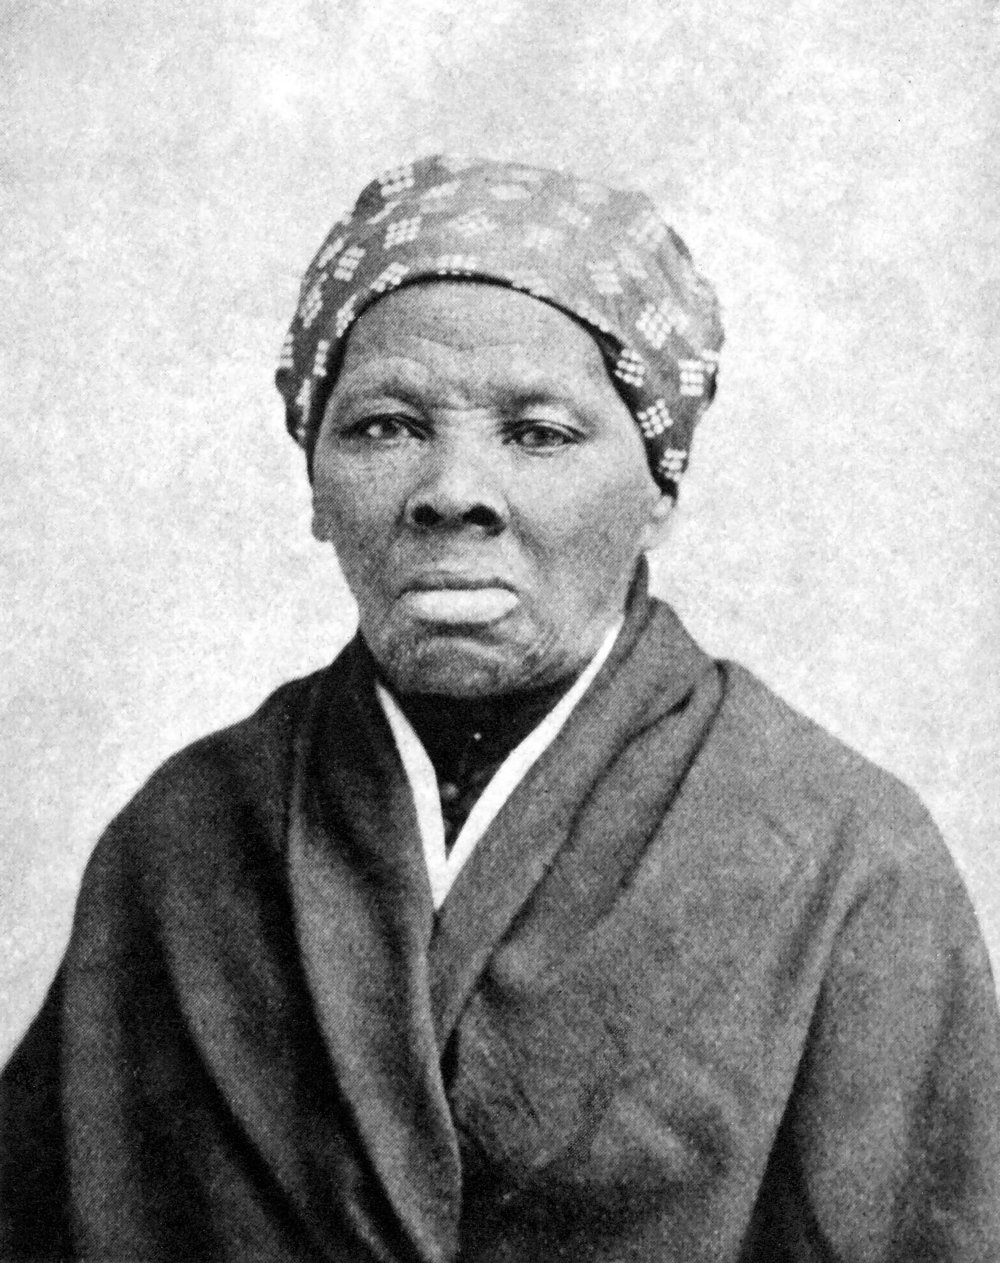 HARRIET TUBMAN - Harriet Tubman was an African American woman that was born into slavery. She escaped slavery in 1849, changed her name, and, through the Underground Railroad, helped free over 300 slaves. After the Emancipation Proclamation was signed in 1862, Harriet Tubman became an advocate for women's rights alongside some of the strongest women in the movement. She always welcomed those in need into her home and she used her experiences to be a voice for the oppressed, playing a great role in the history of freedom and women's rights.